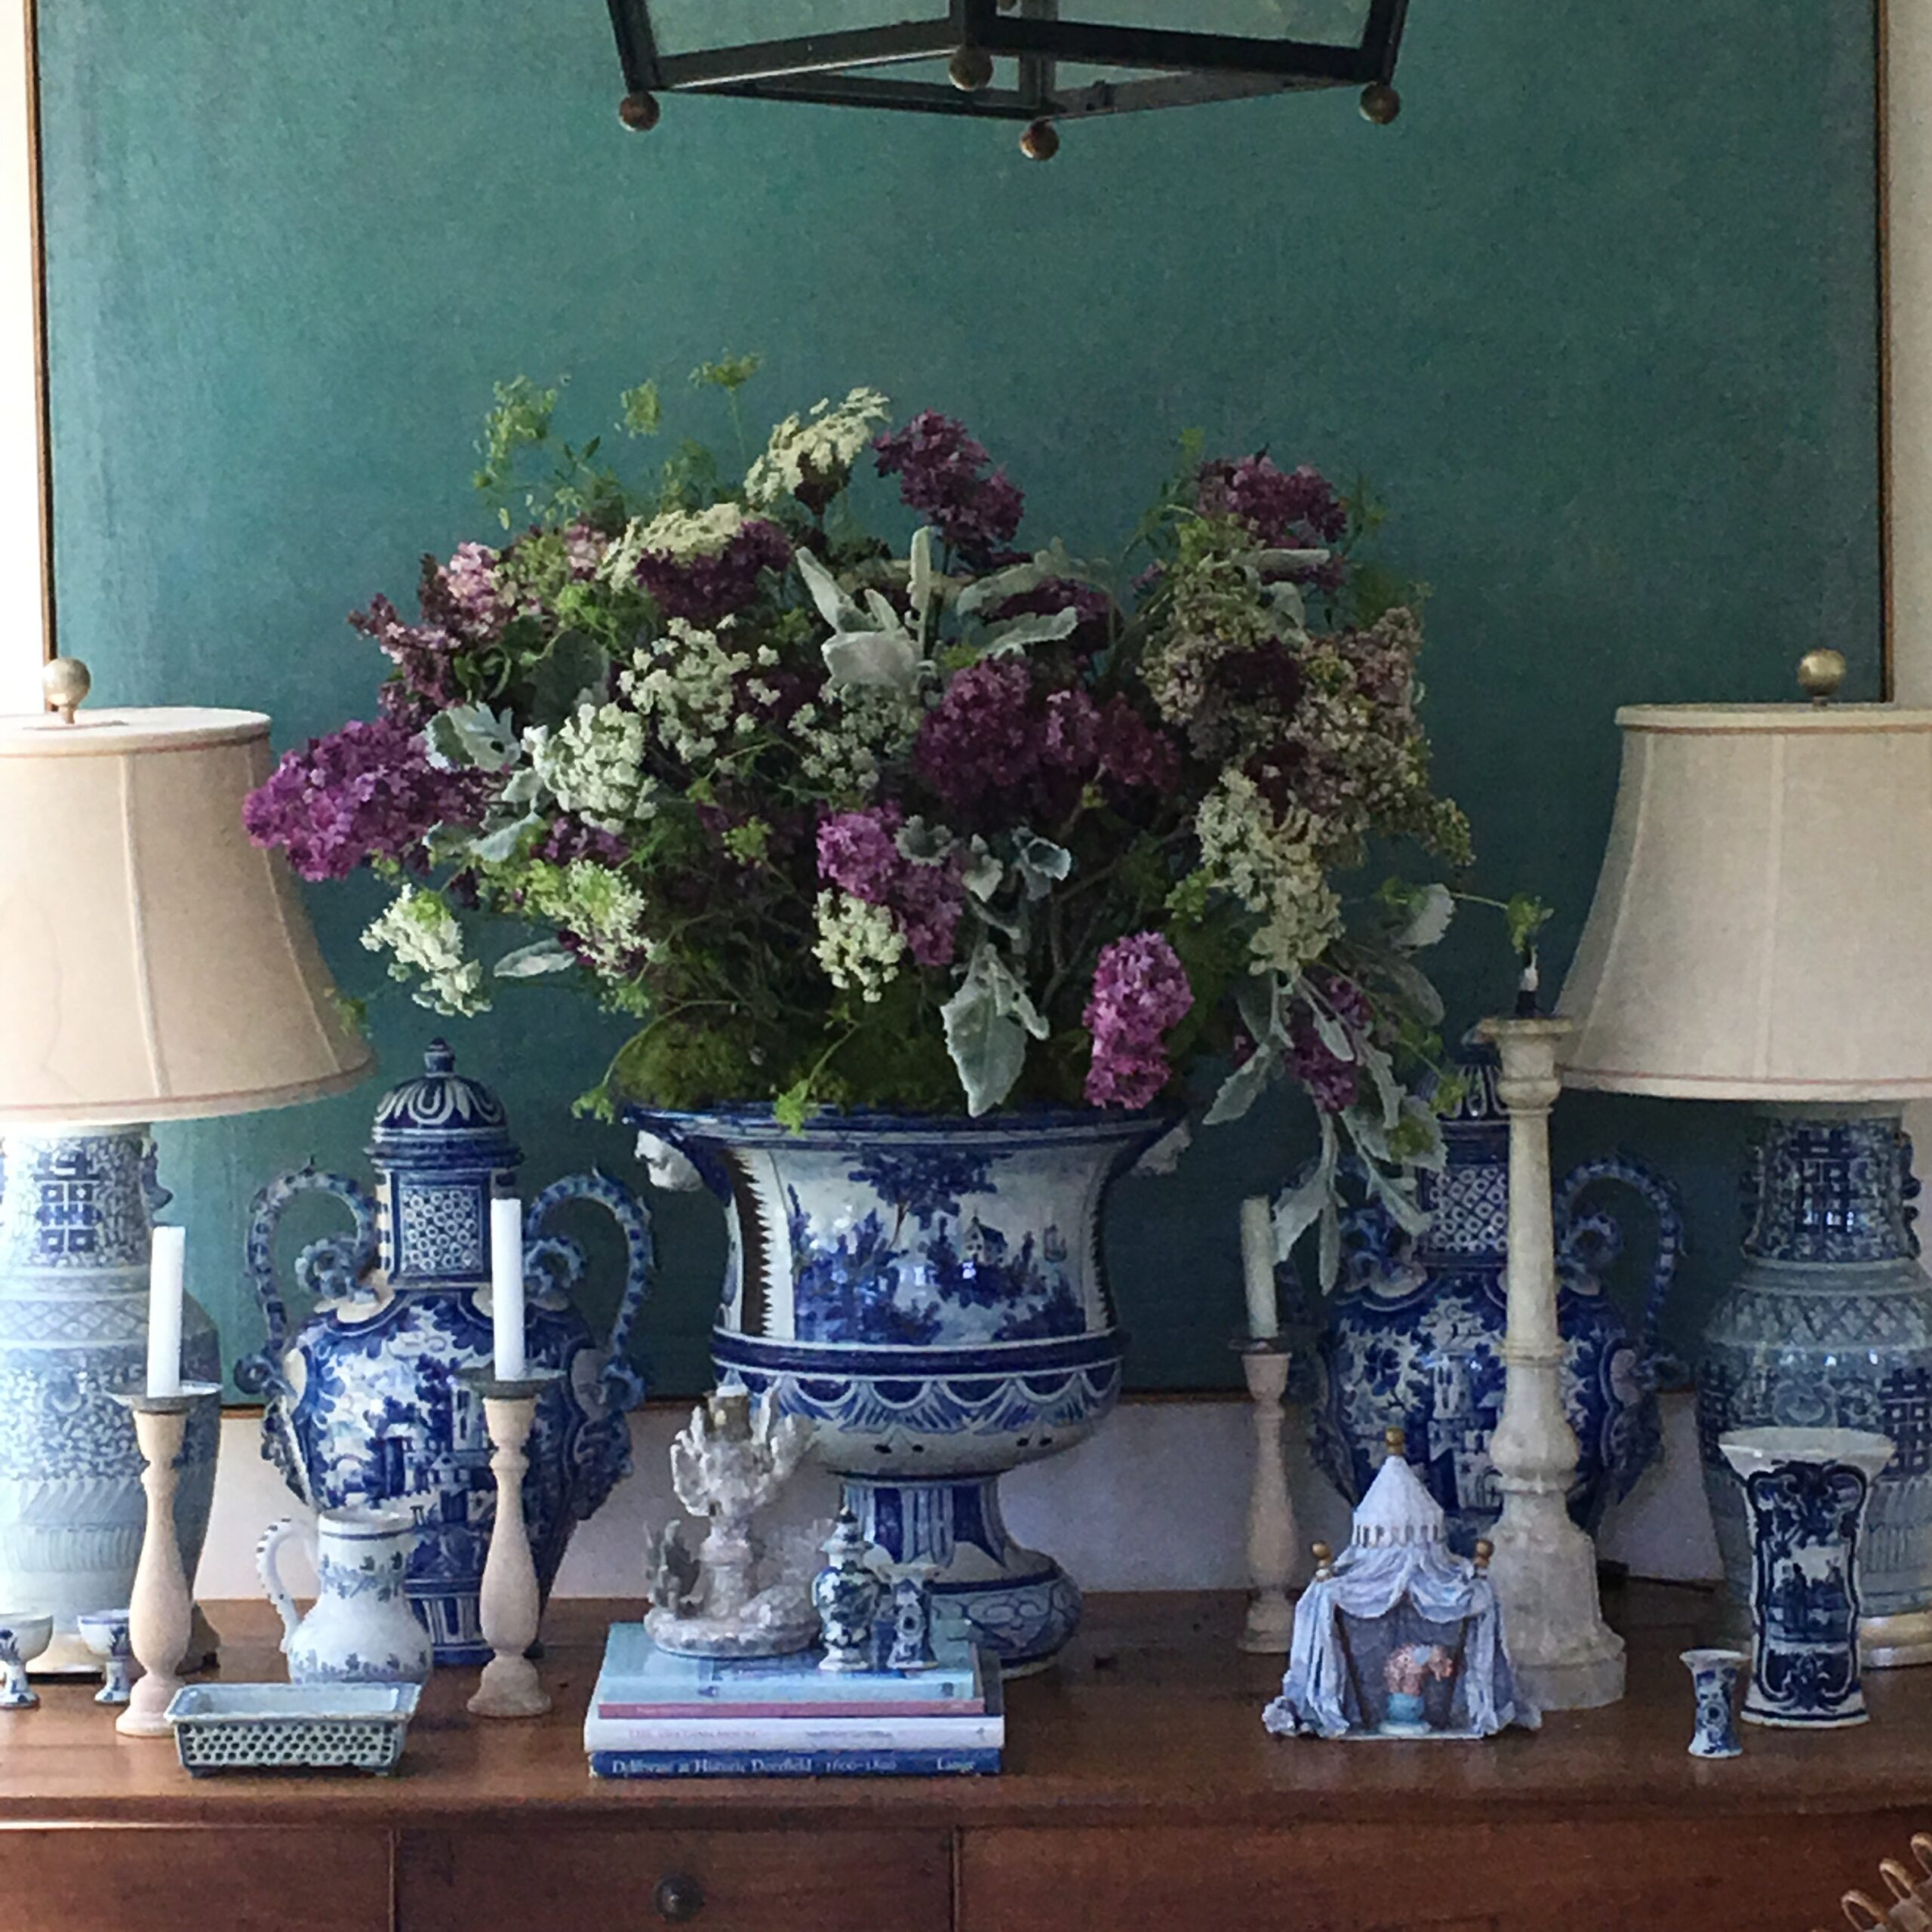 Kane & Co is a full service studio specializing in boutique events, interior design & bespoke flowers